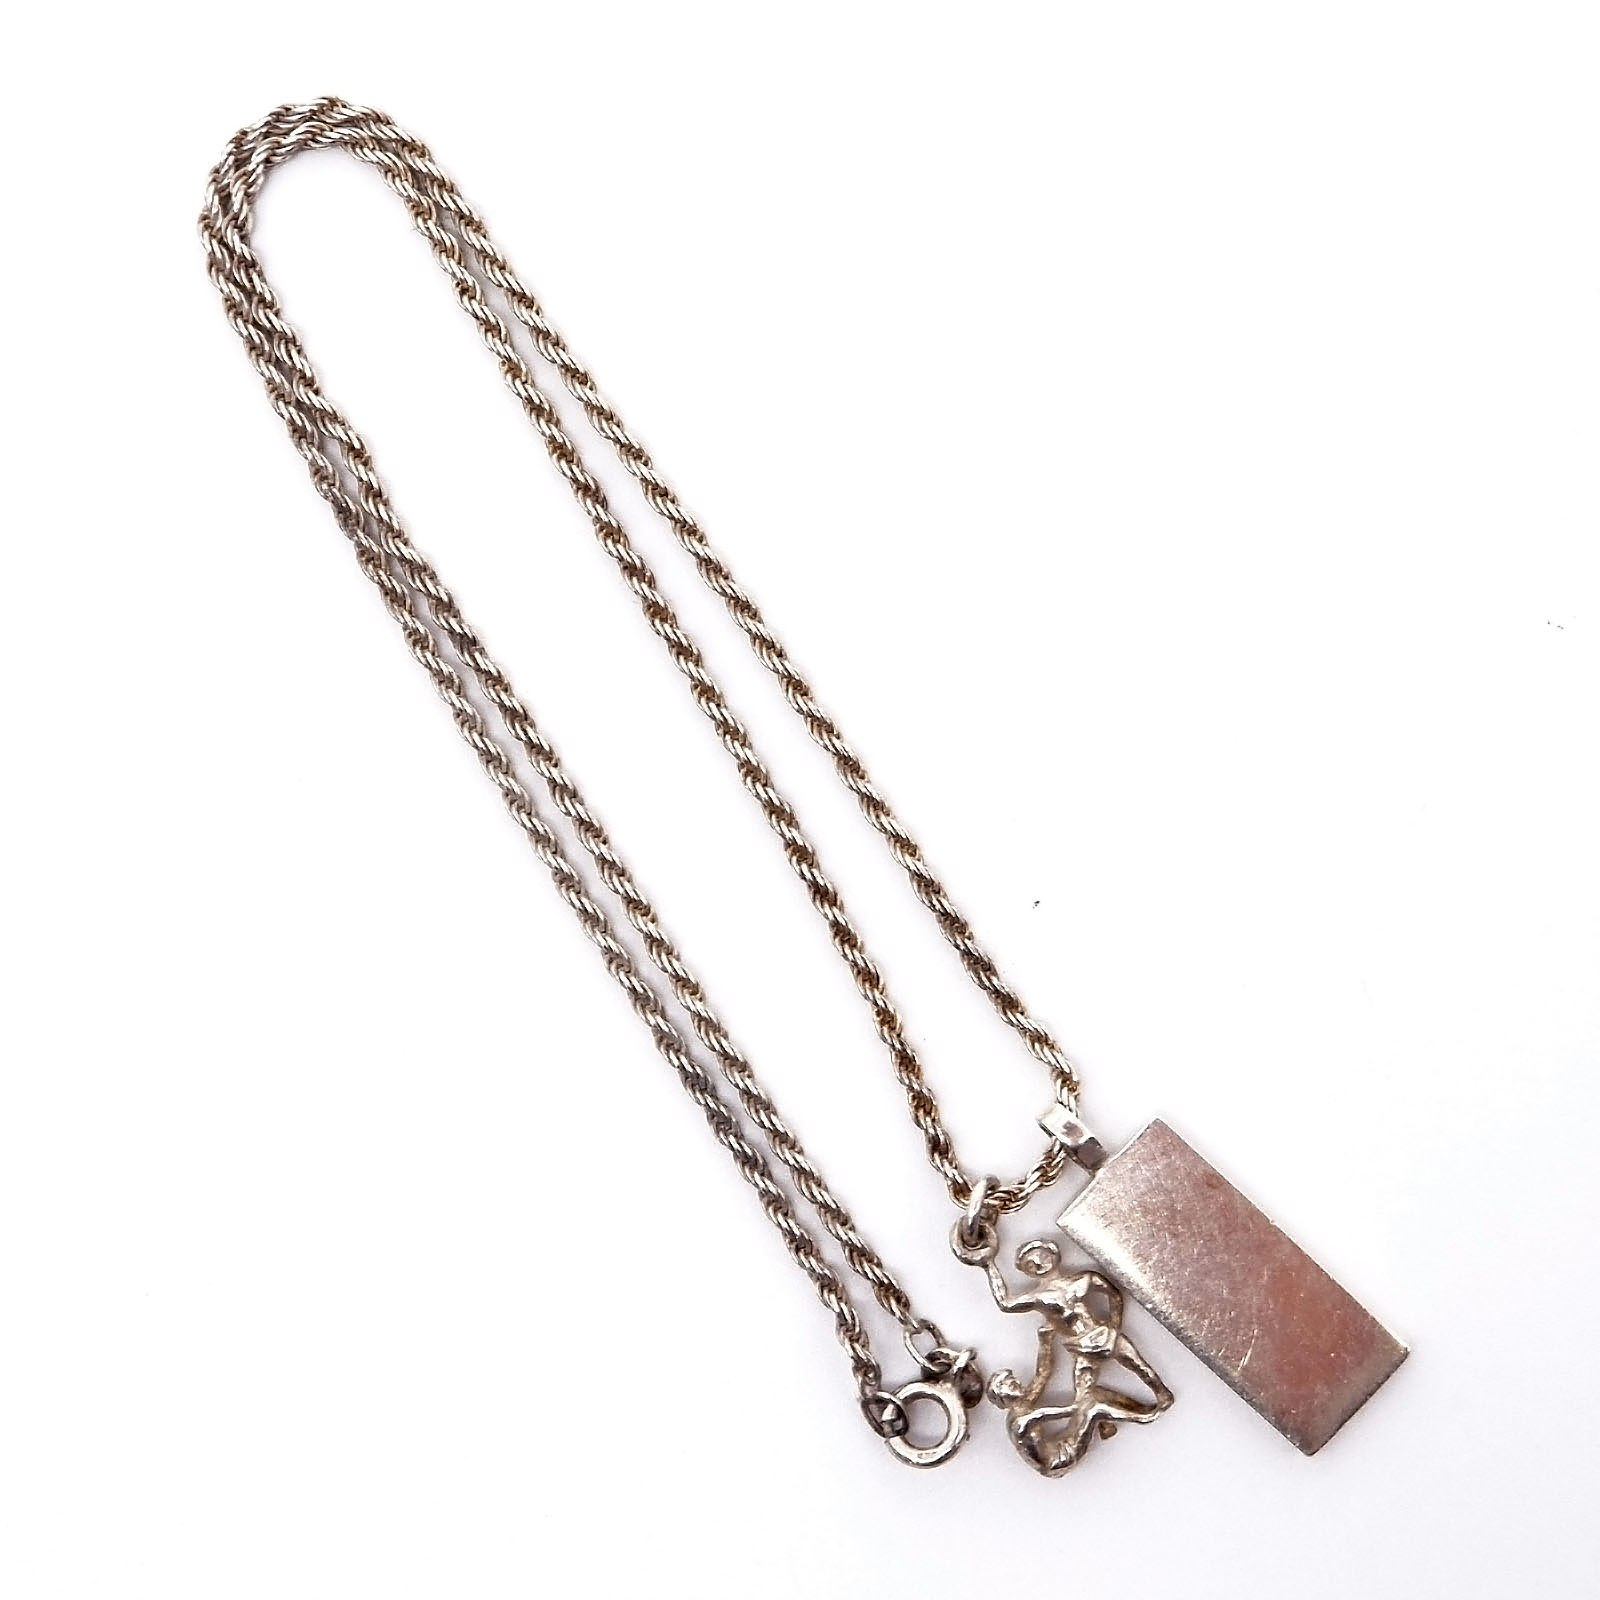 'Sterling Silver Triple Rope Chain With Silver Bar Pendant Stamped 5g and Another Silver Charm'